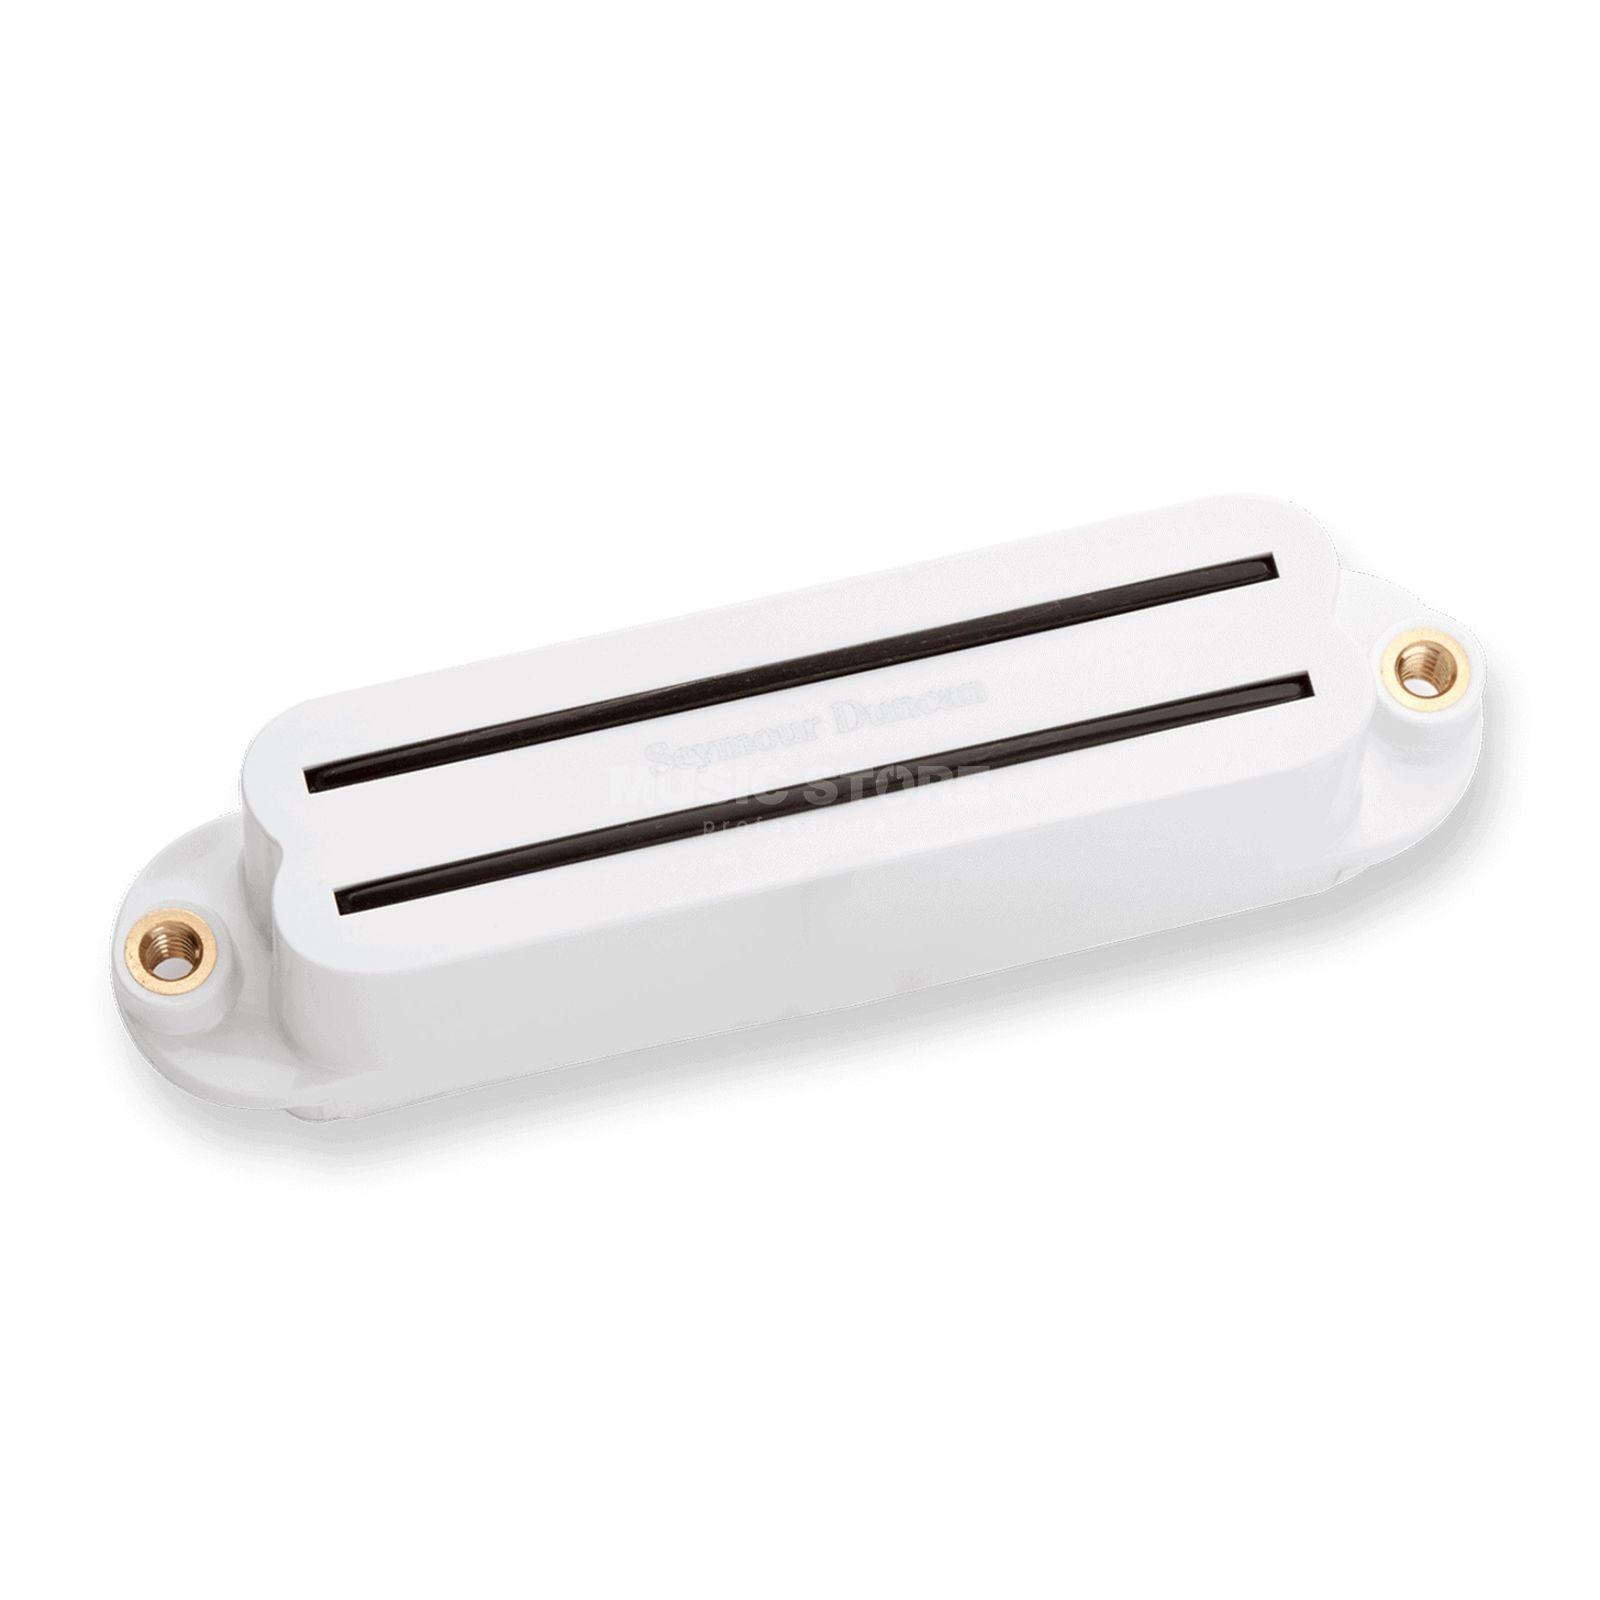 Seymour Duncan Strat Hot Rail Bridge white 4-phase Product Image